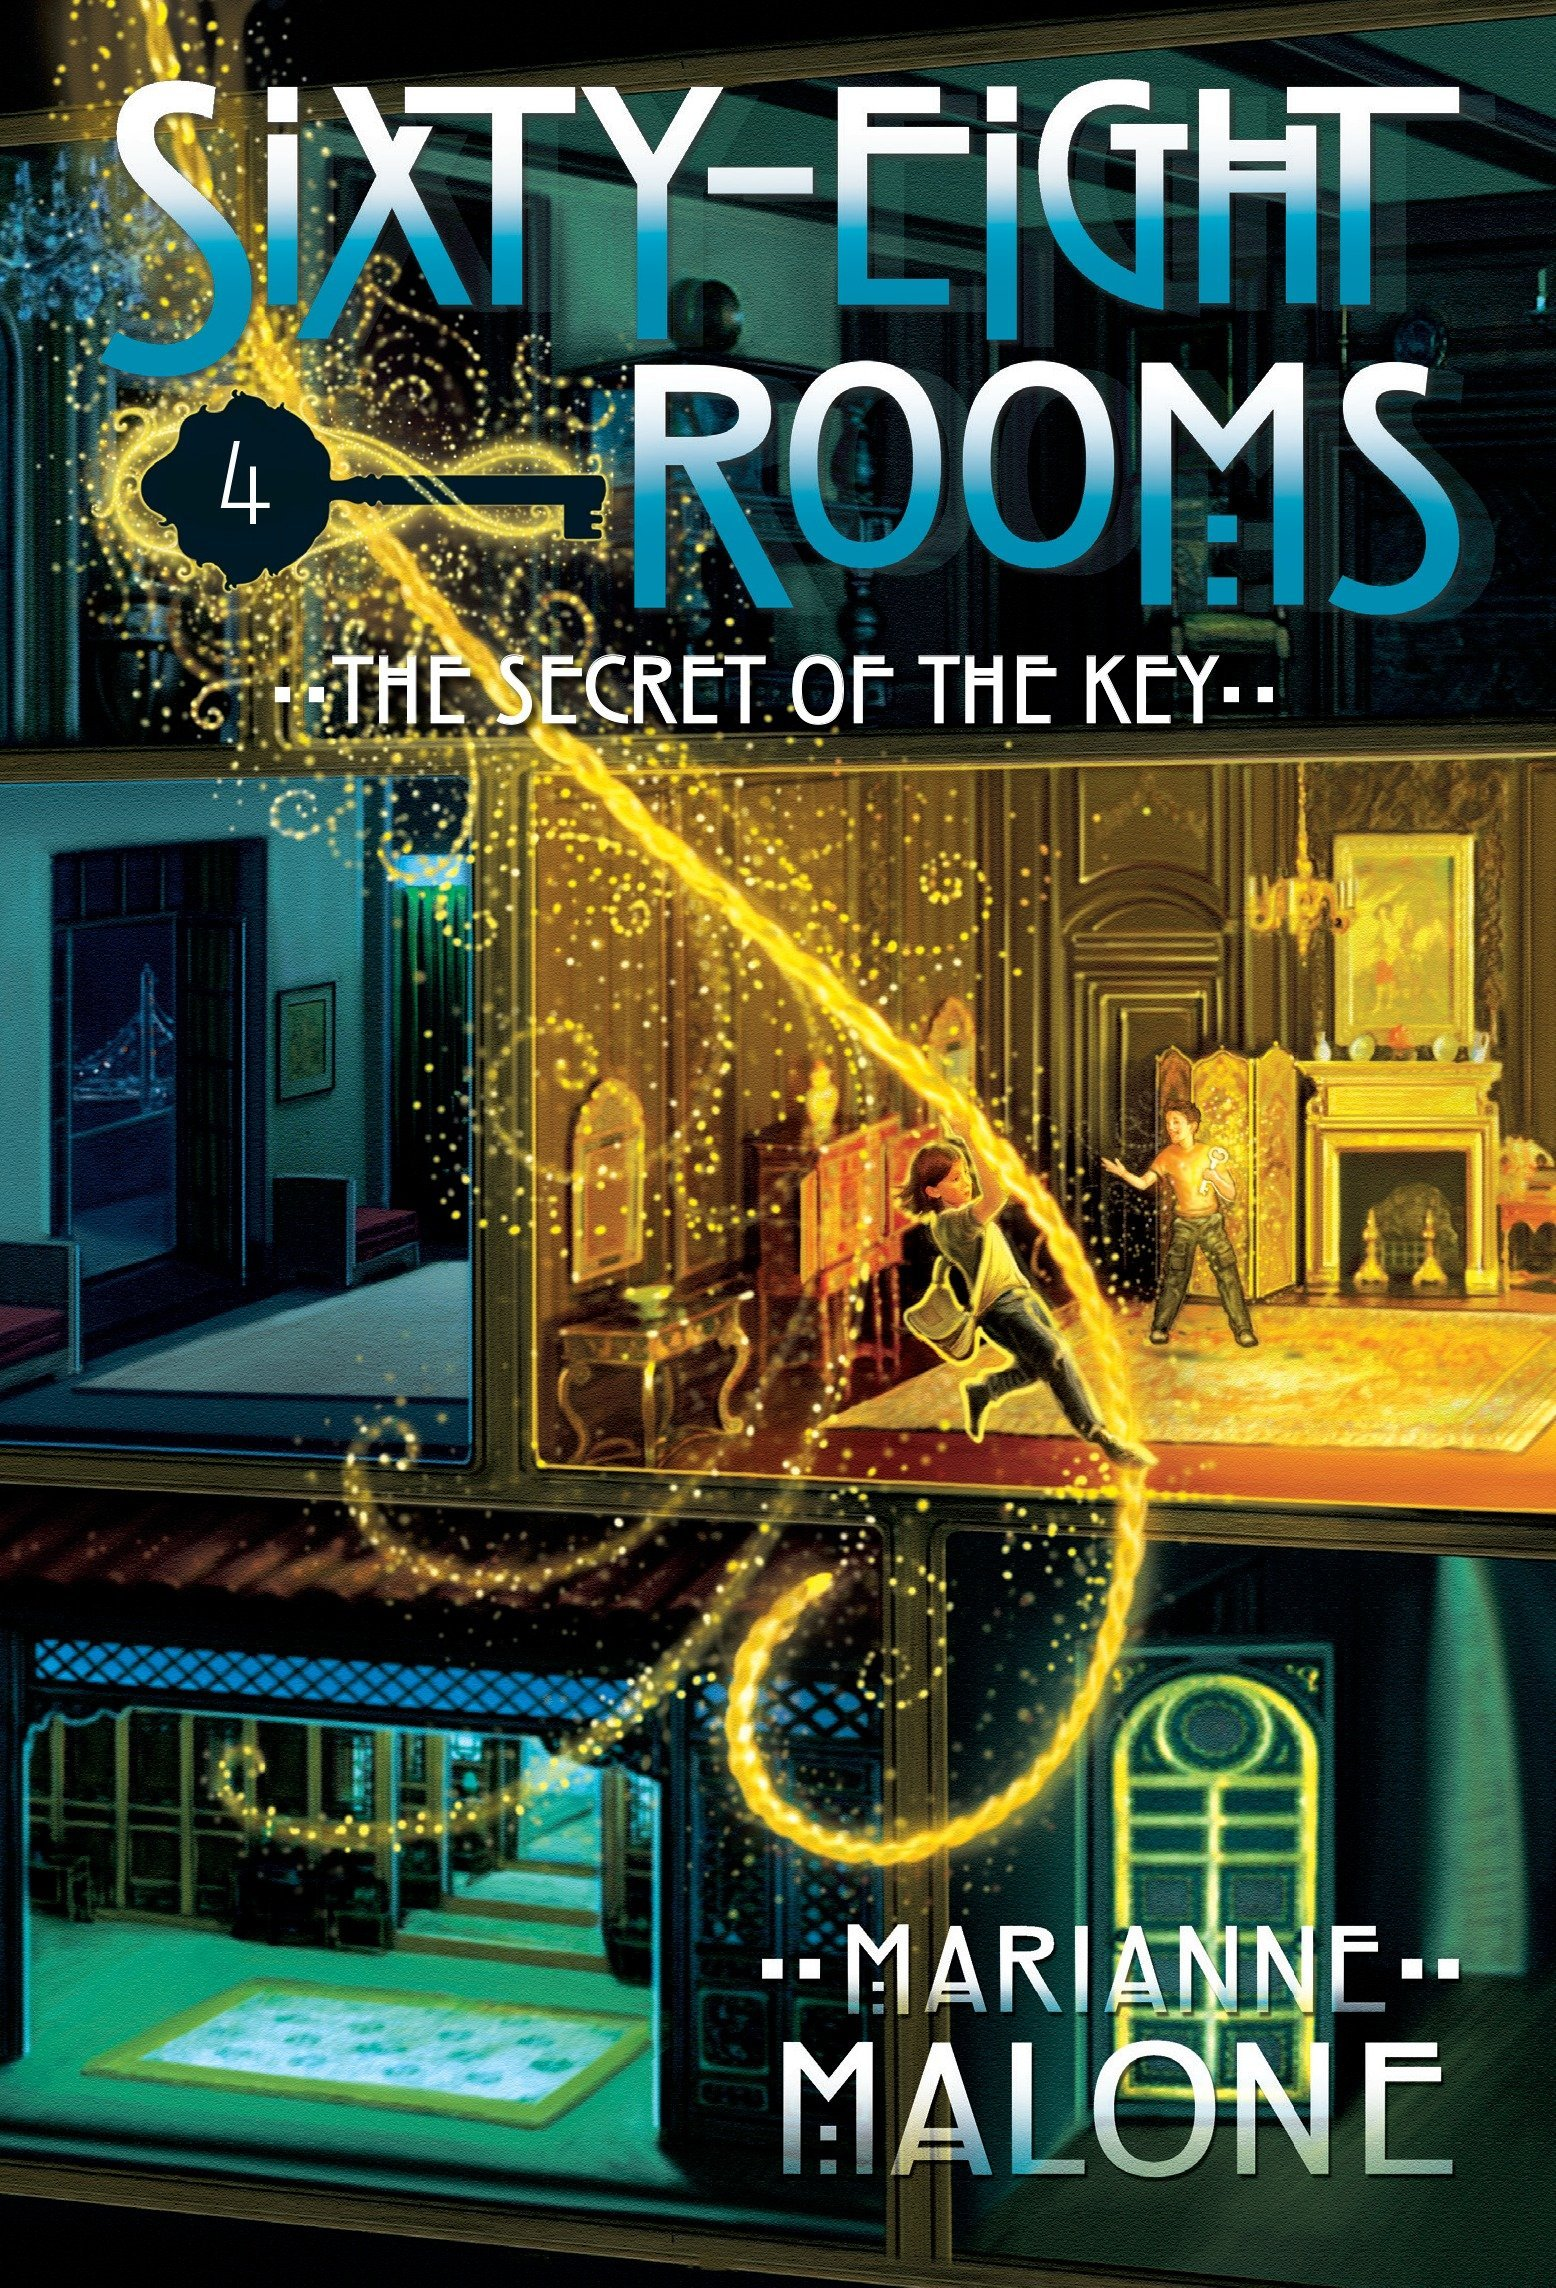 The Secret of the Key: A Sixty-Eight Rooms Adventure (The Sixty-Eight Rooms Adventures) pdf